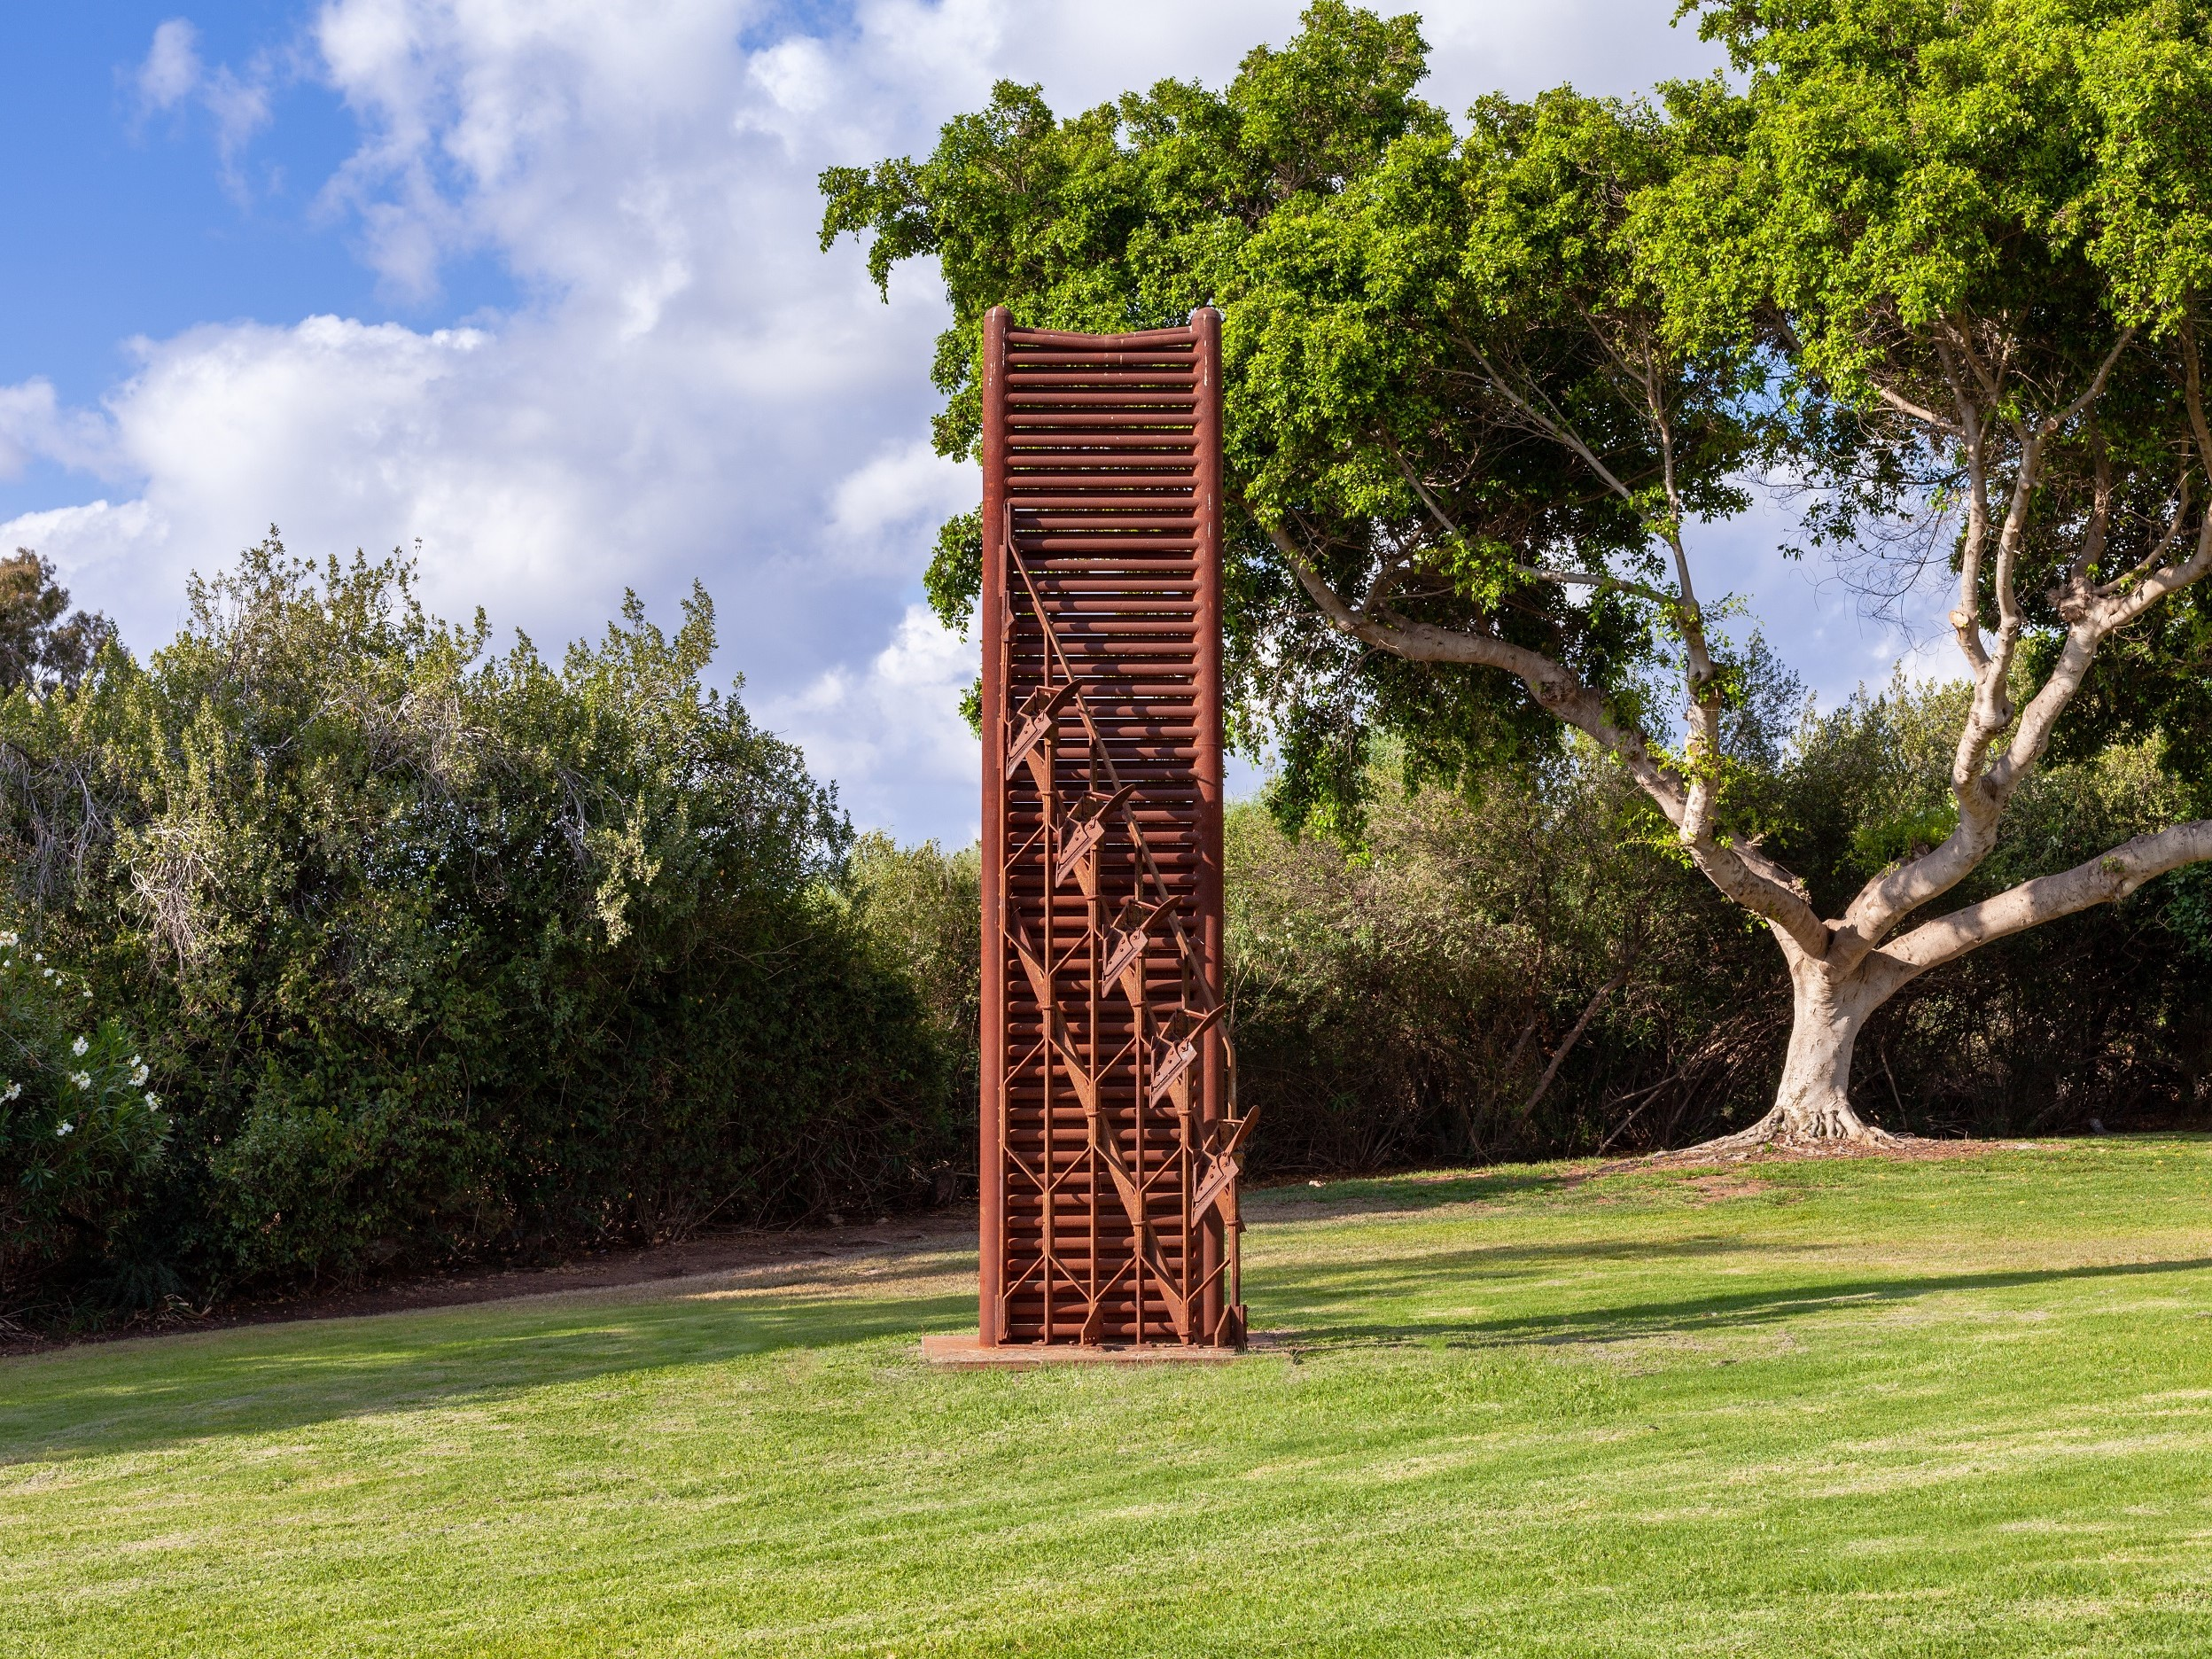 Avyam Sculpture Garden by Dorchin